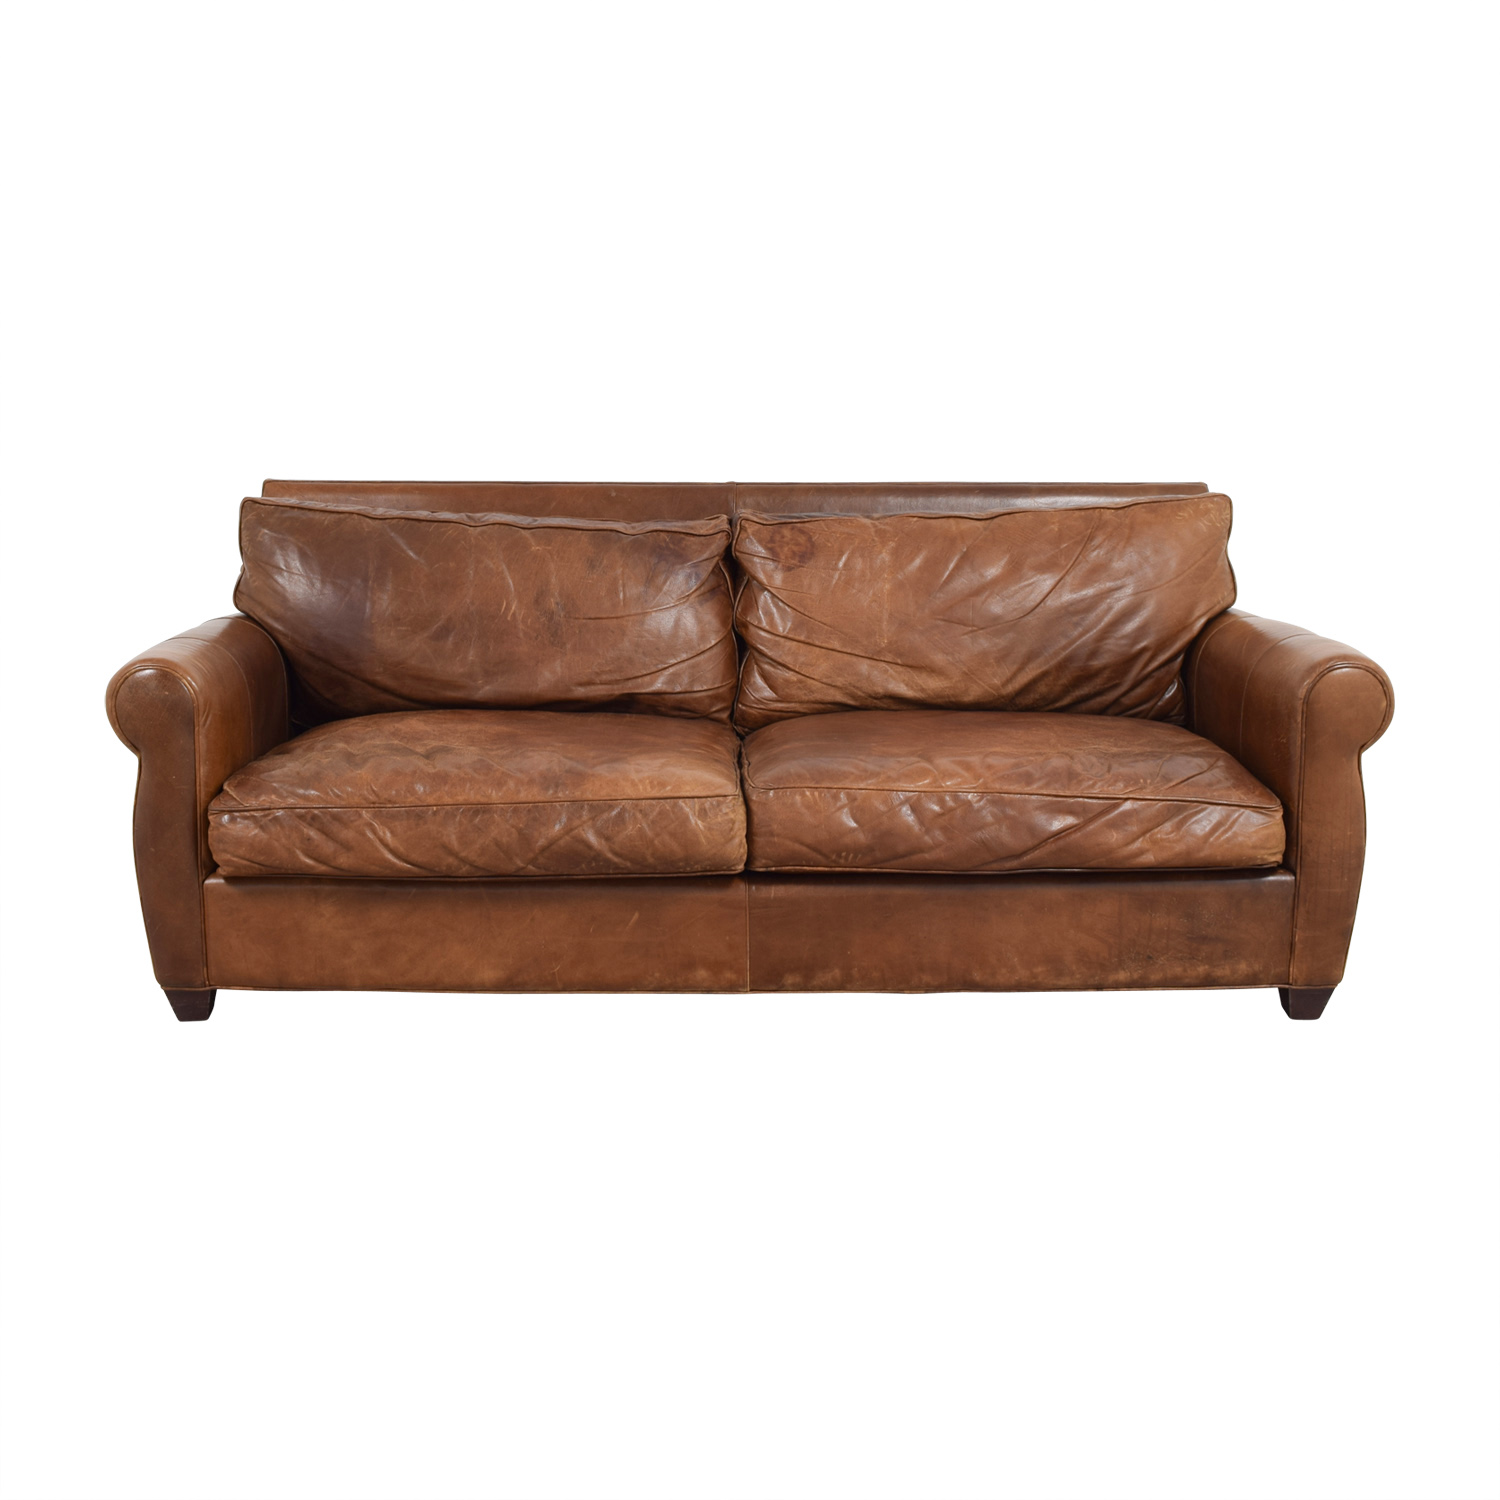 buy Arhaus Rust Leather Two-Cushion Sofa Arhaus Sofas